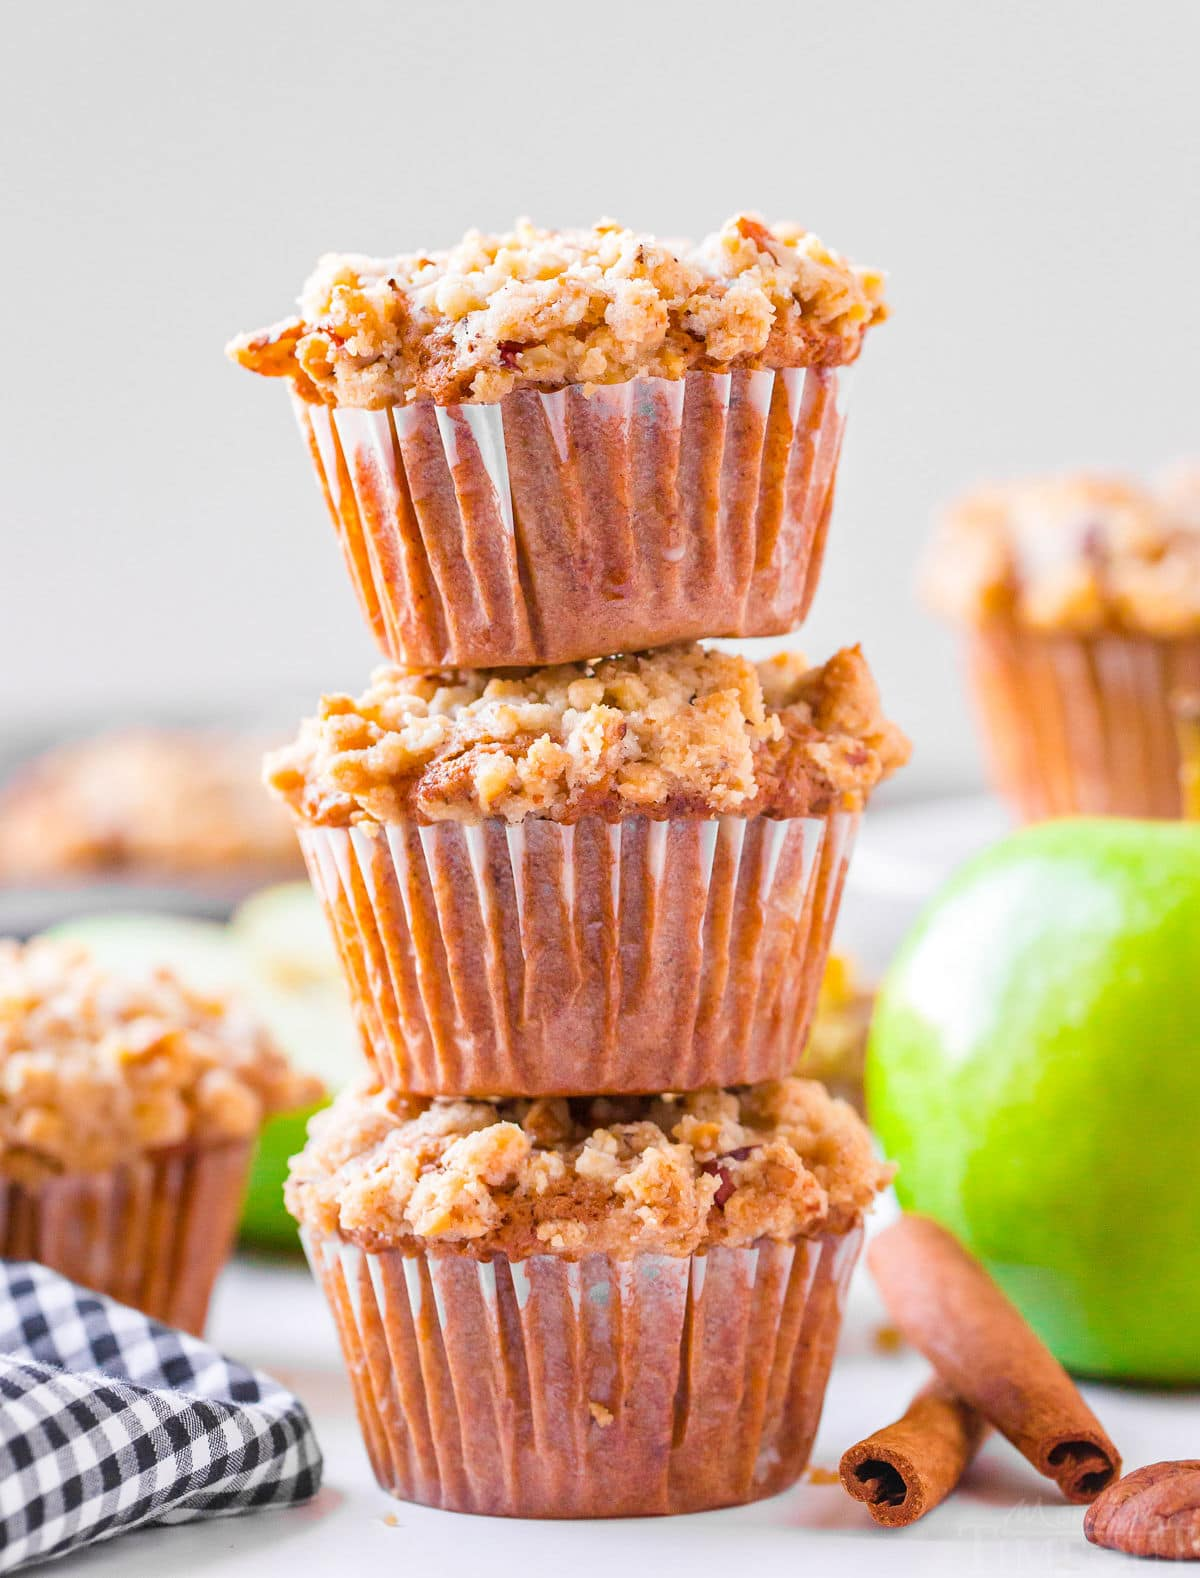 apple muffins-stacked three high with more muffins in background